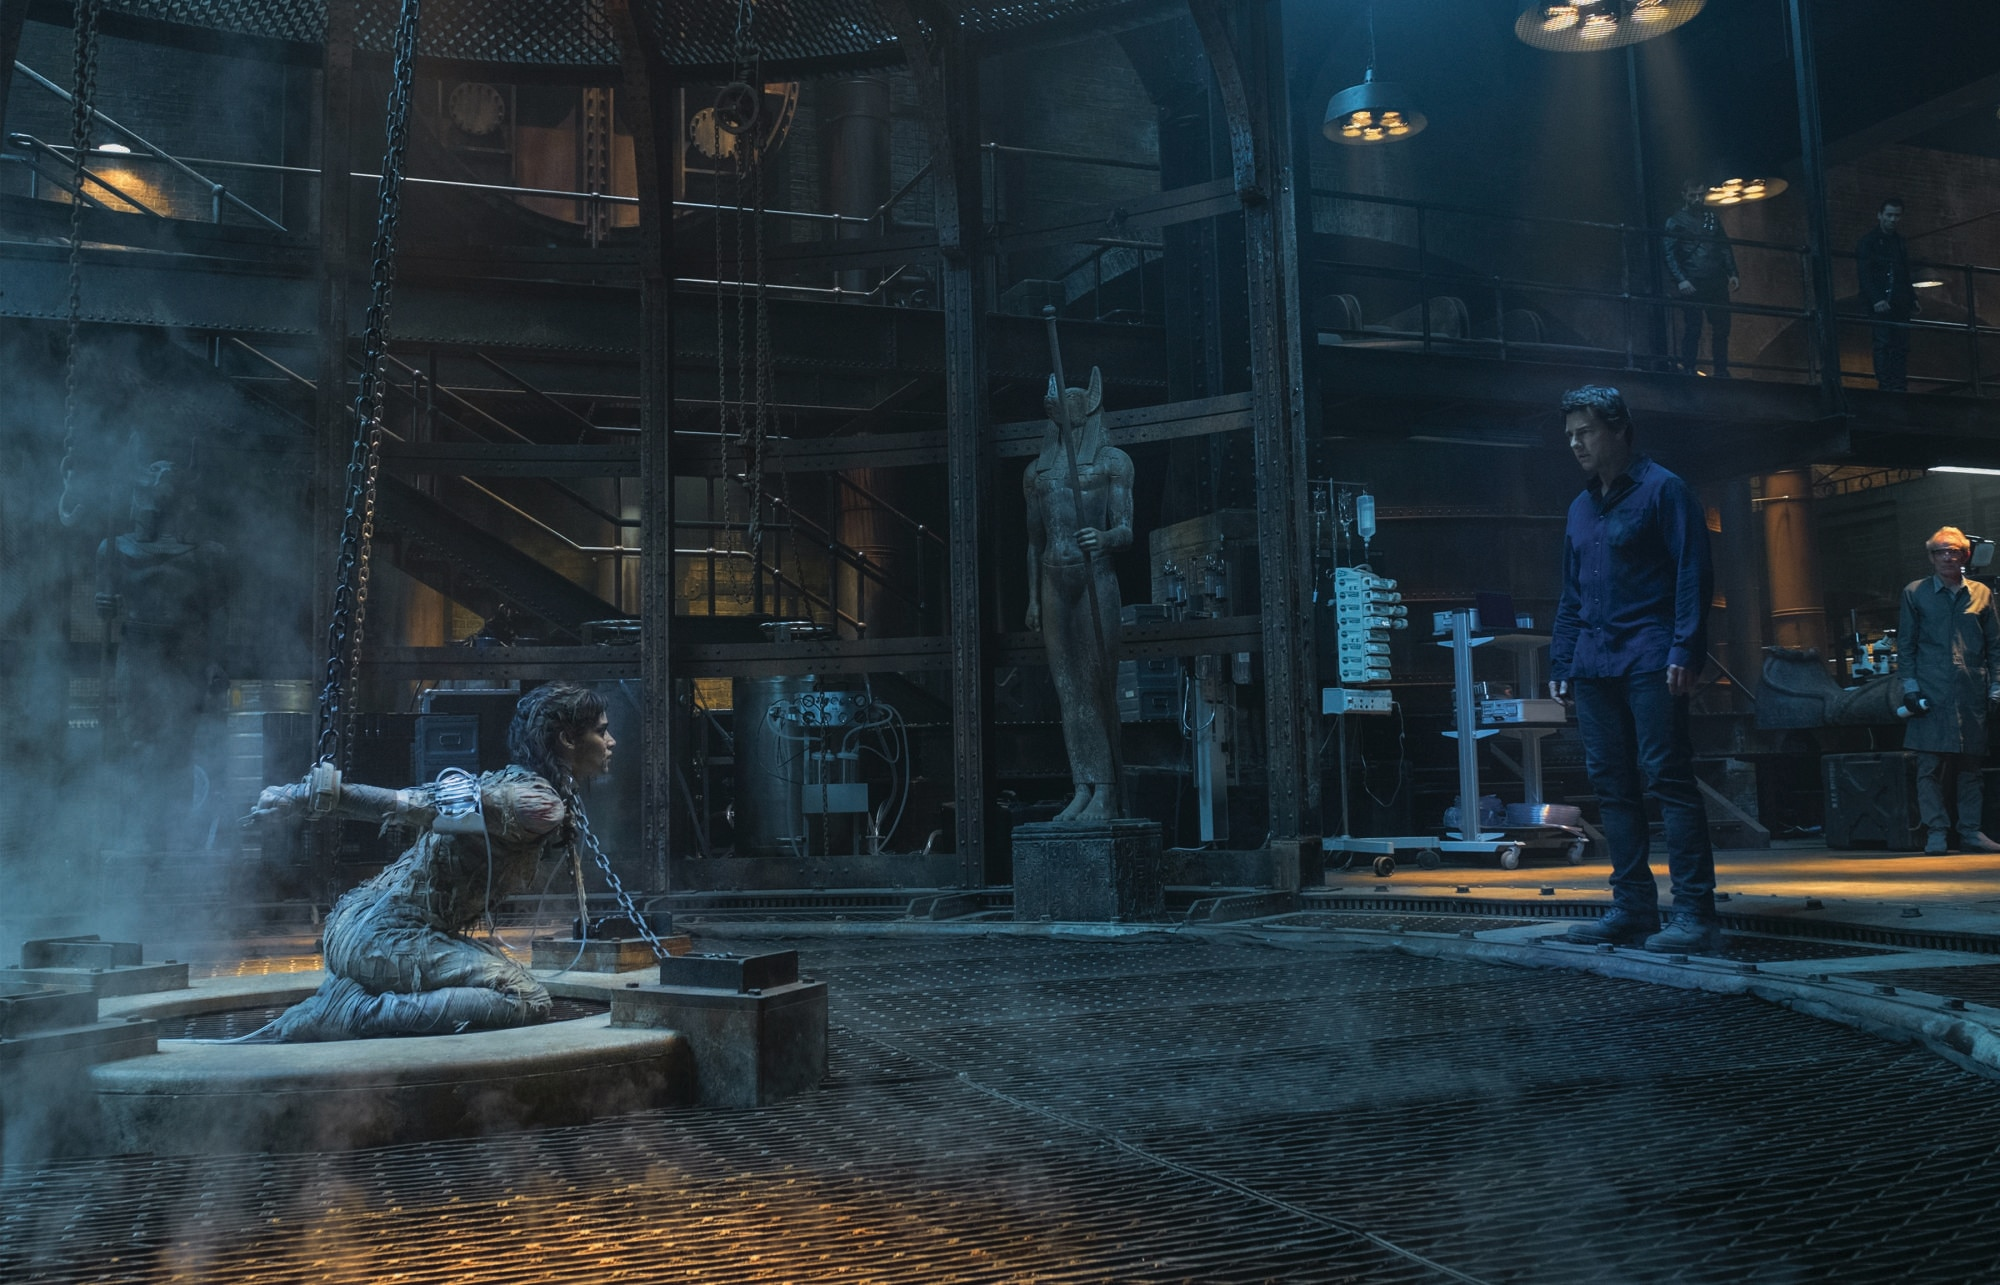 mummy 30 - The Mummy - New Video Featurette and Massive Image Gallery